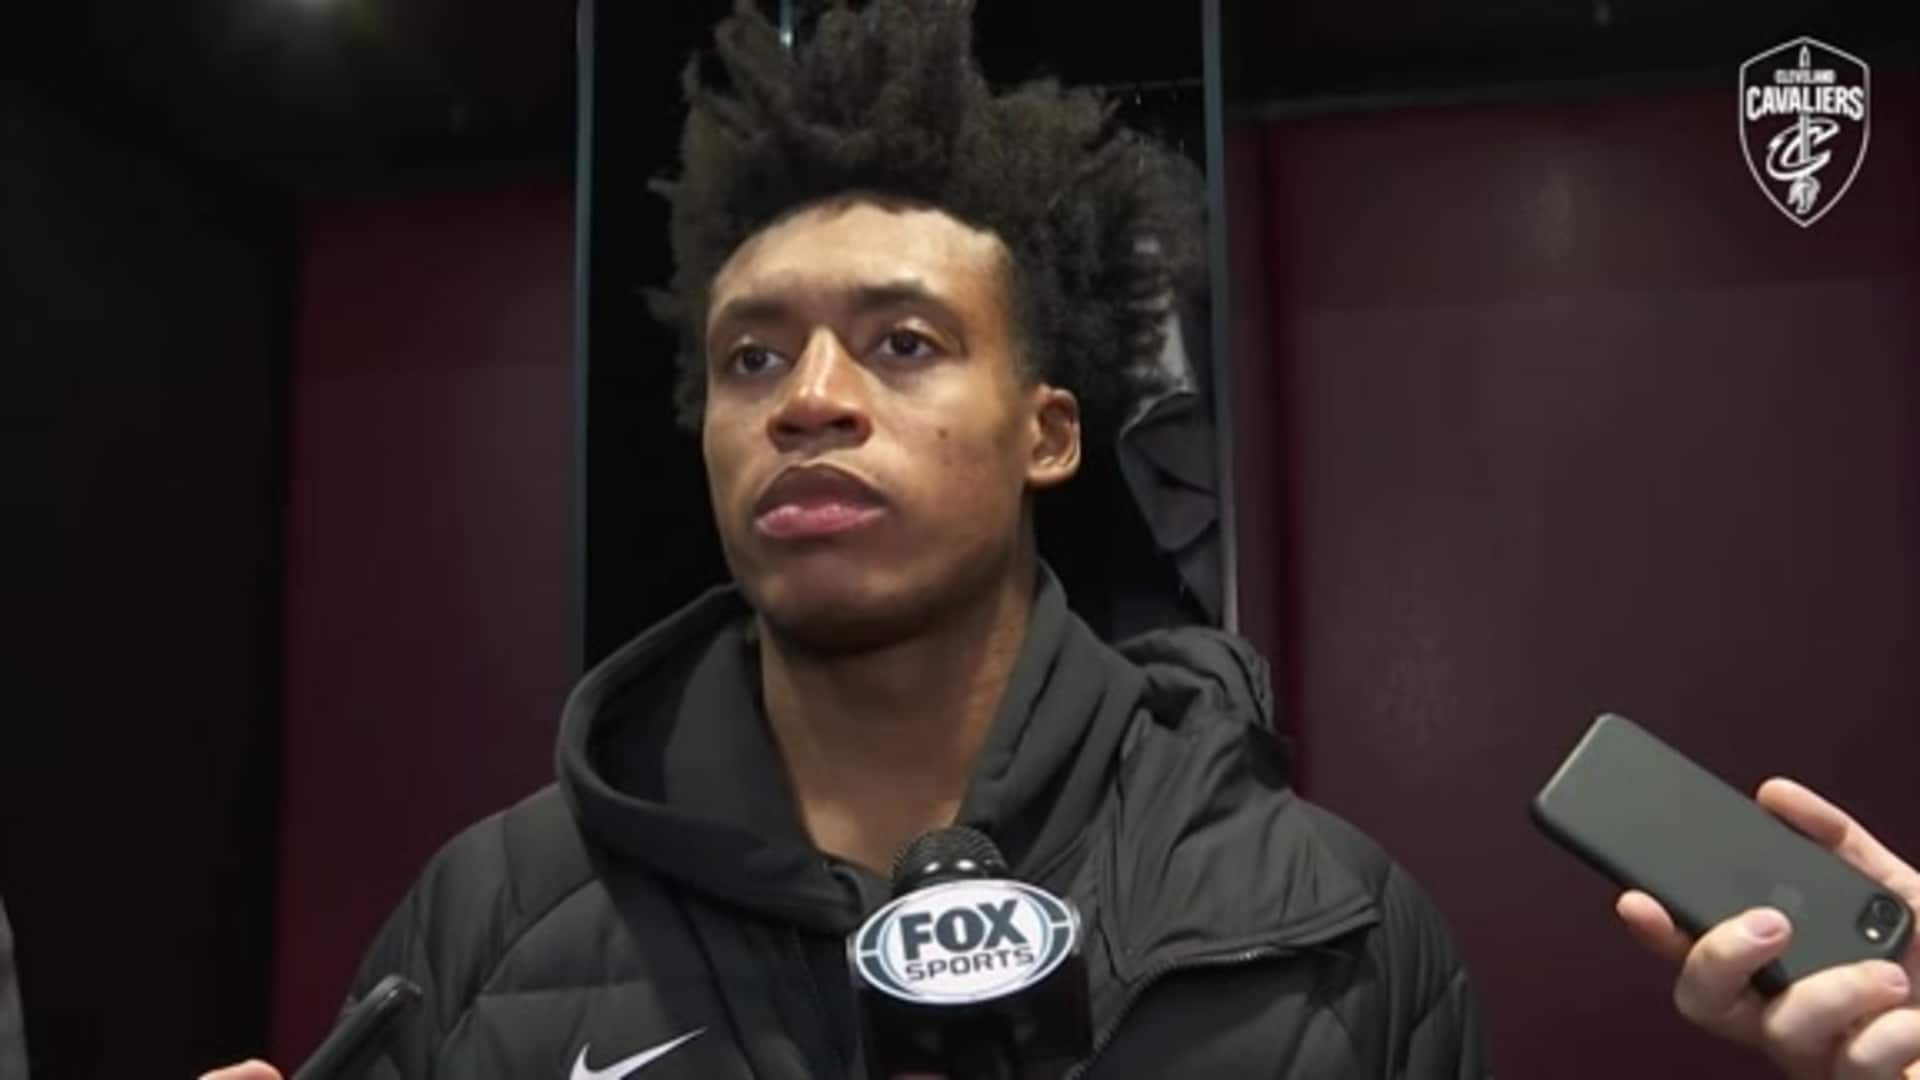 Cavs vs. Wizards Postgame: Collin Sexton